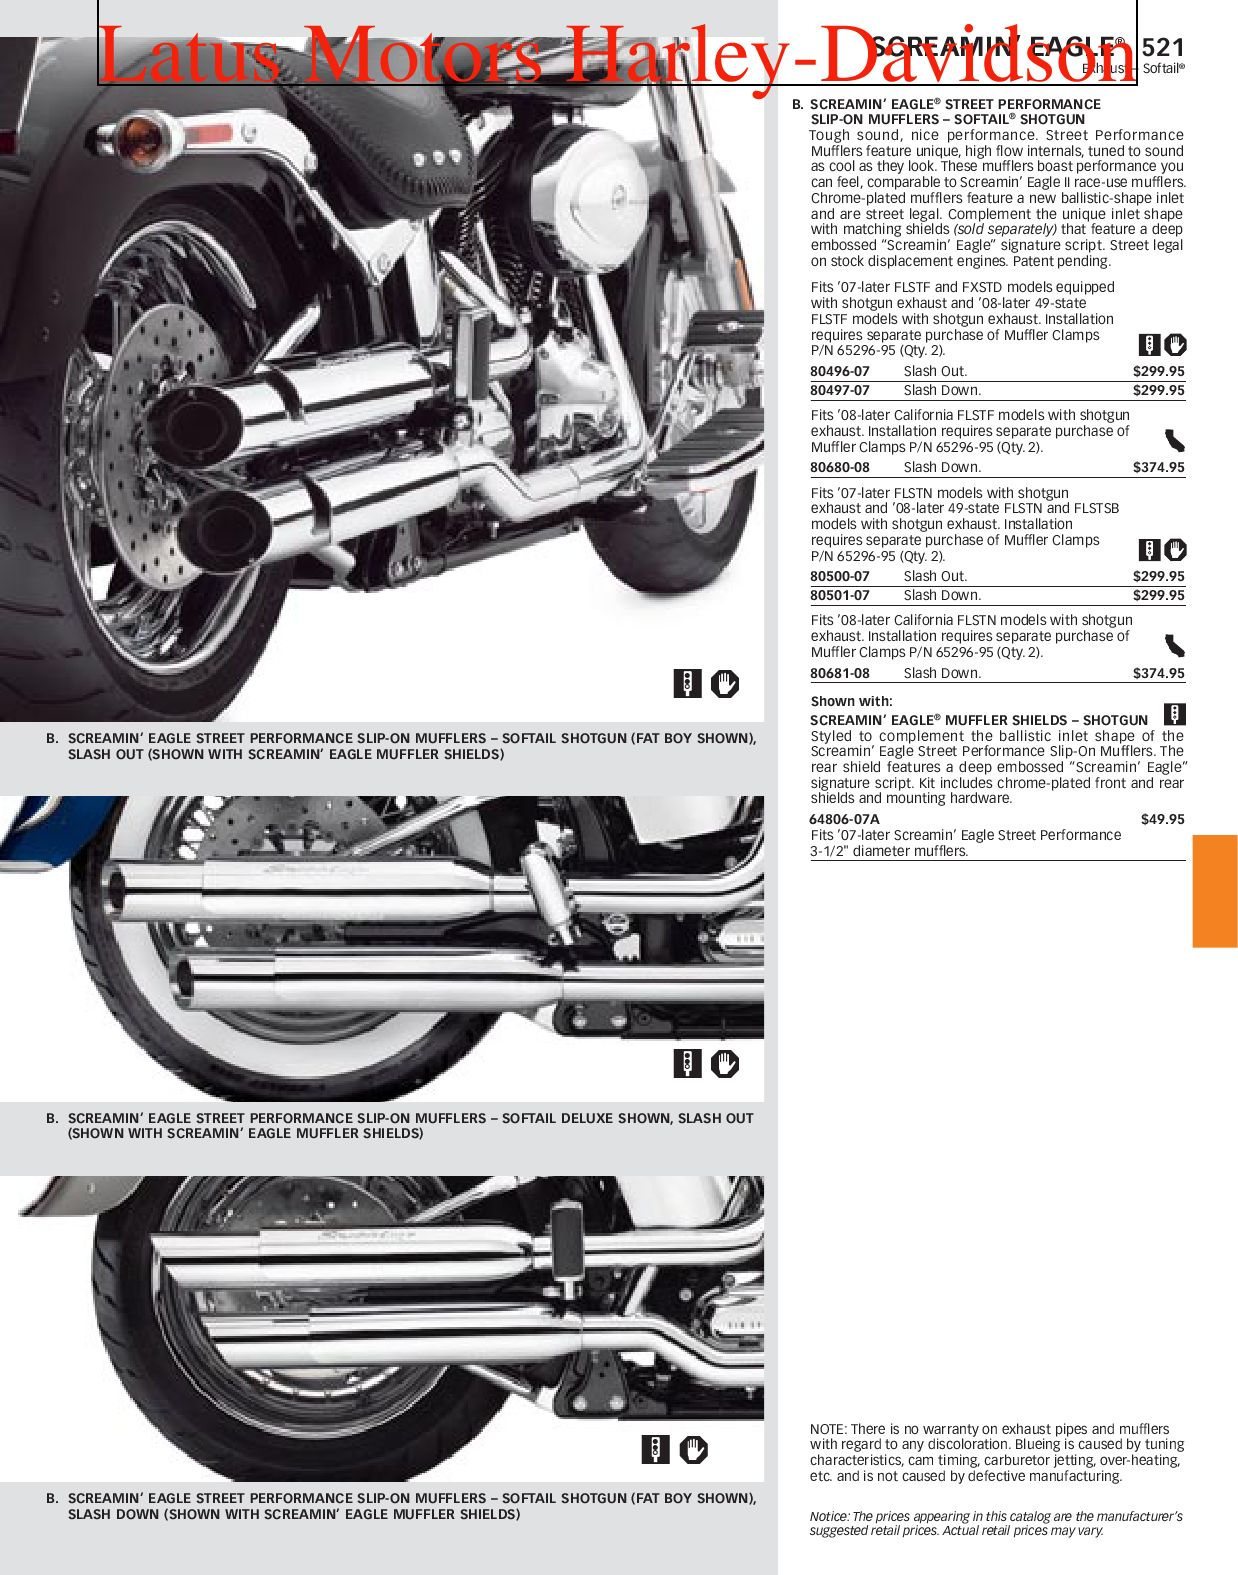 Harley Davidson Screamin Eagle Parts And Accessories Catalog By Harley Davidson Of Portland Issuu